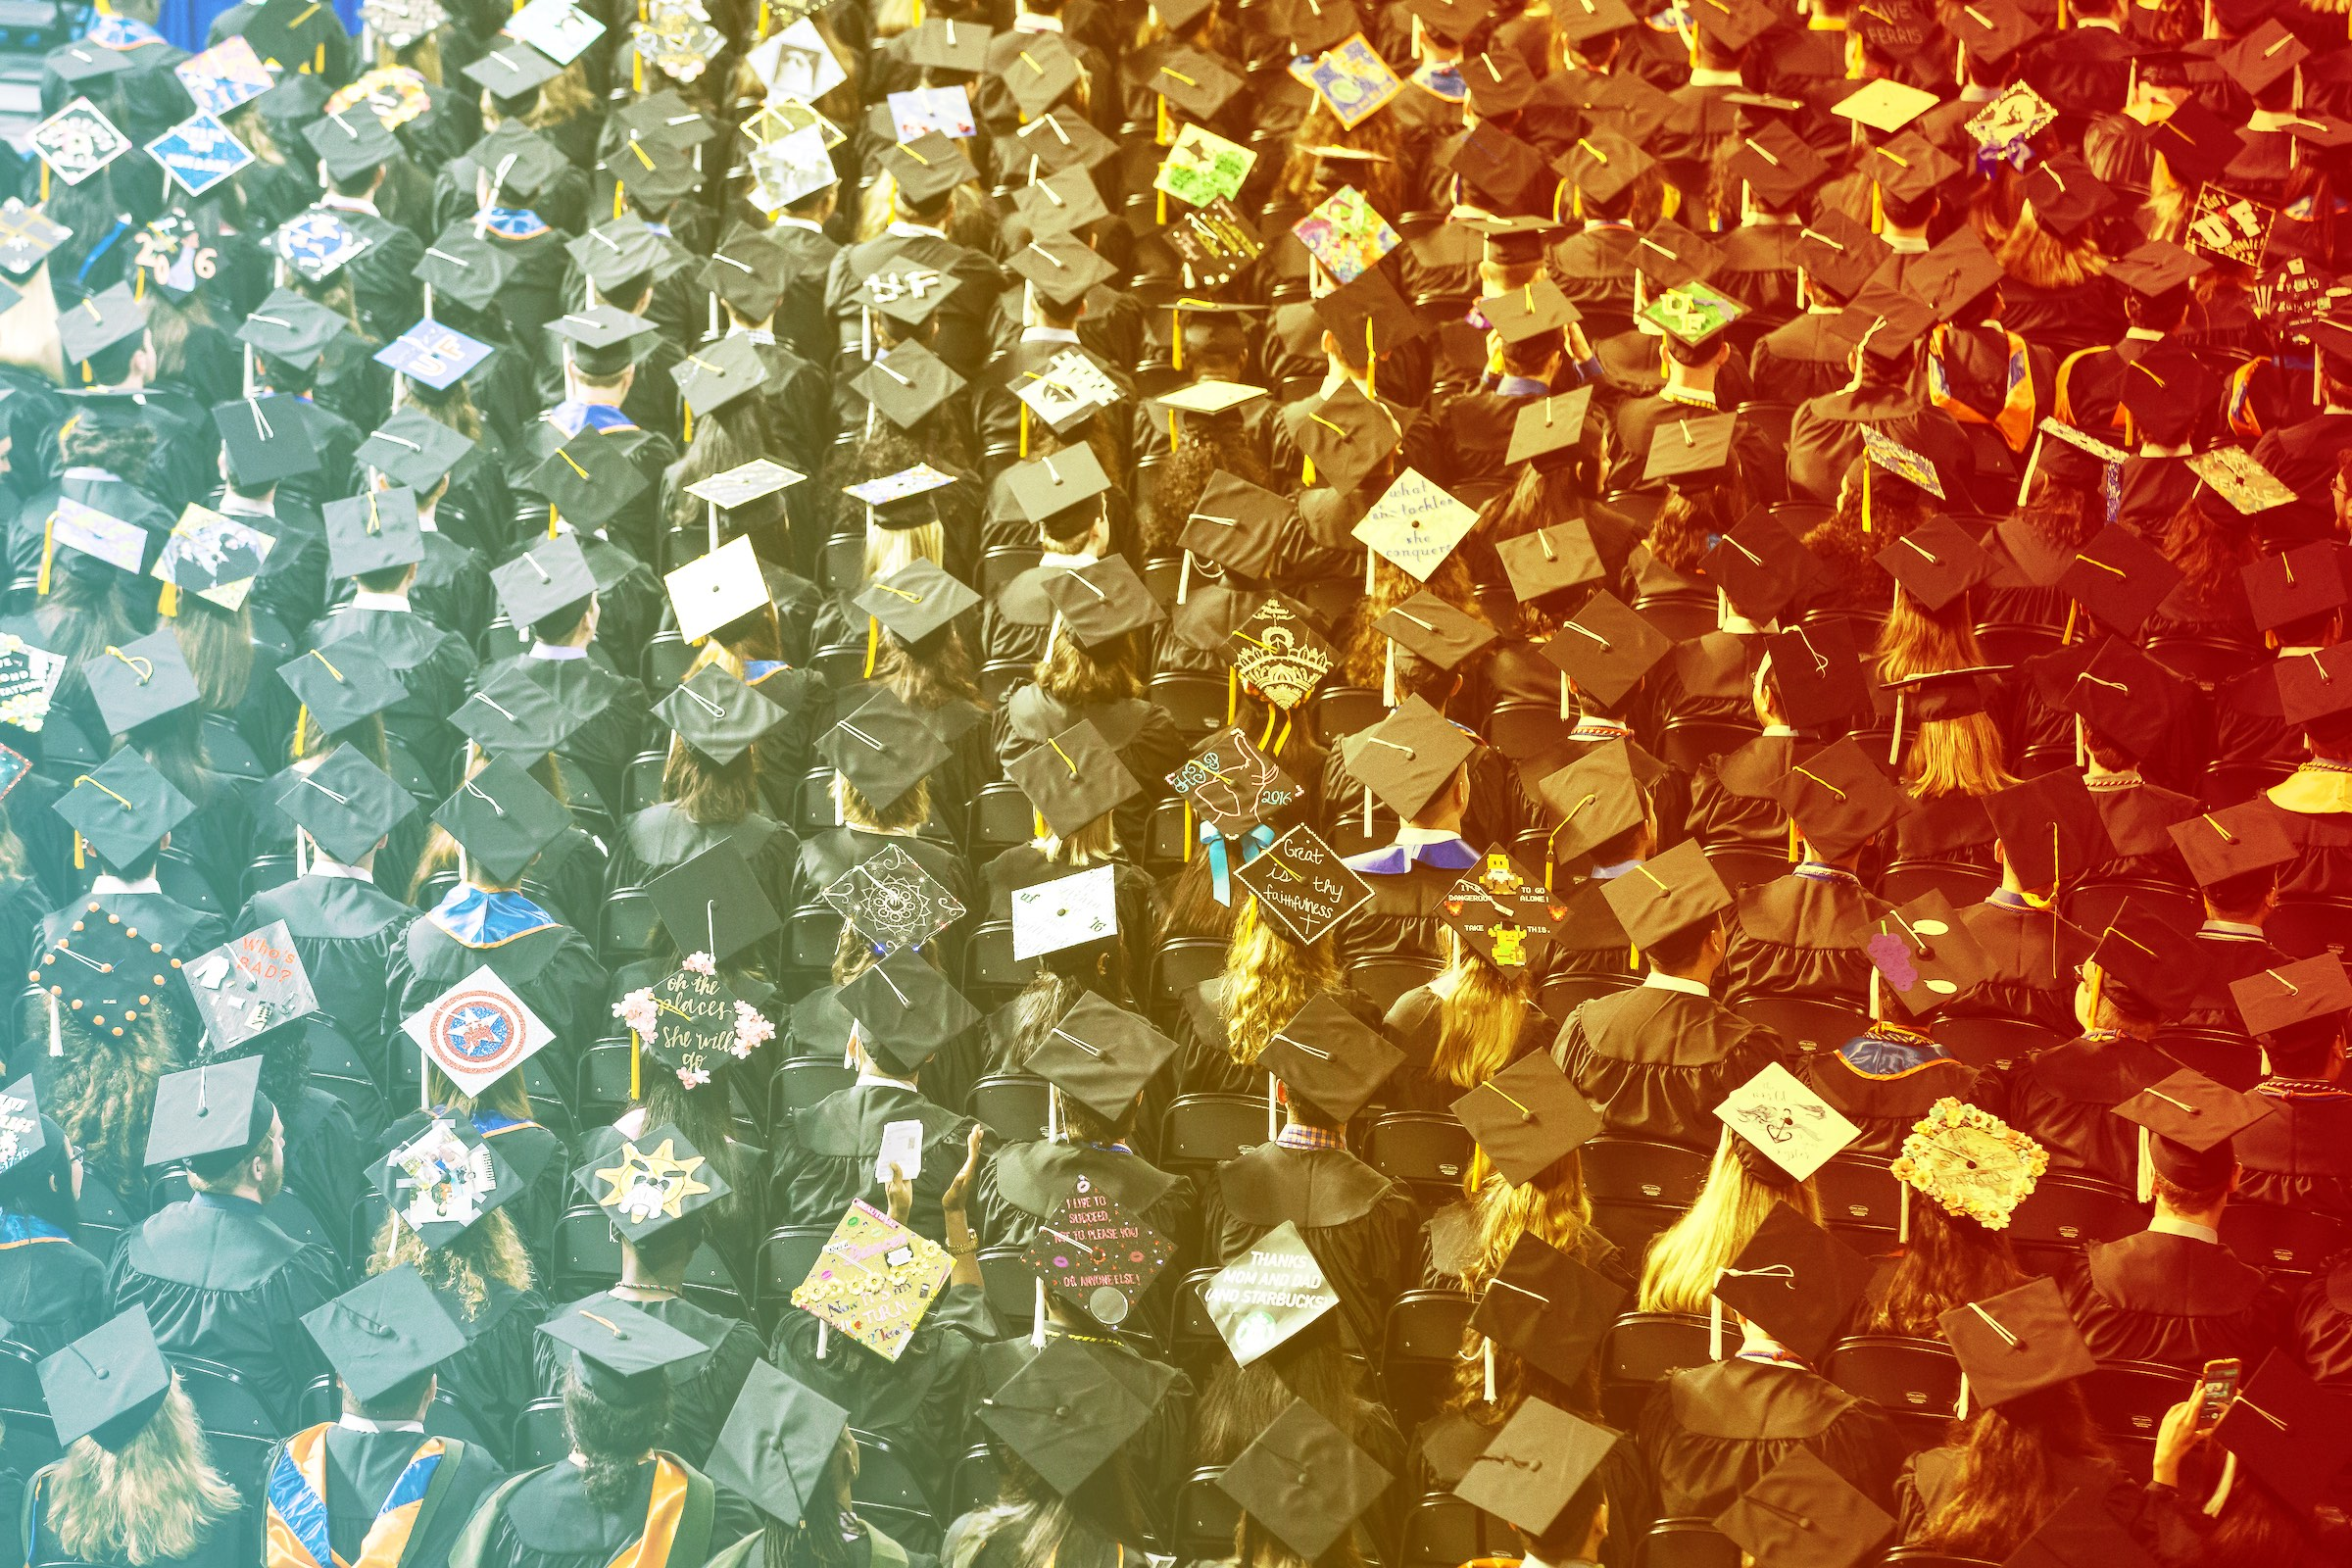 UF Online image of large group of graduates in cap and gown during ...